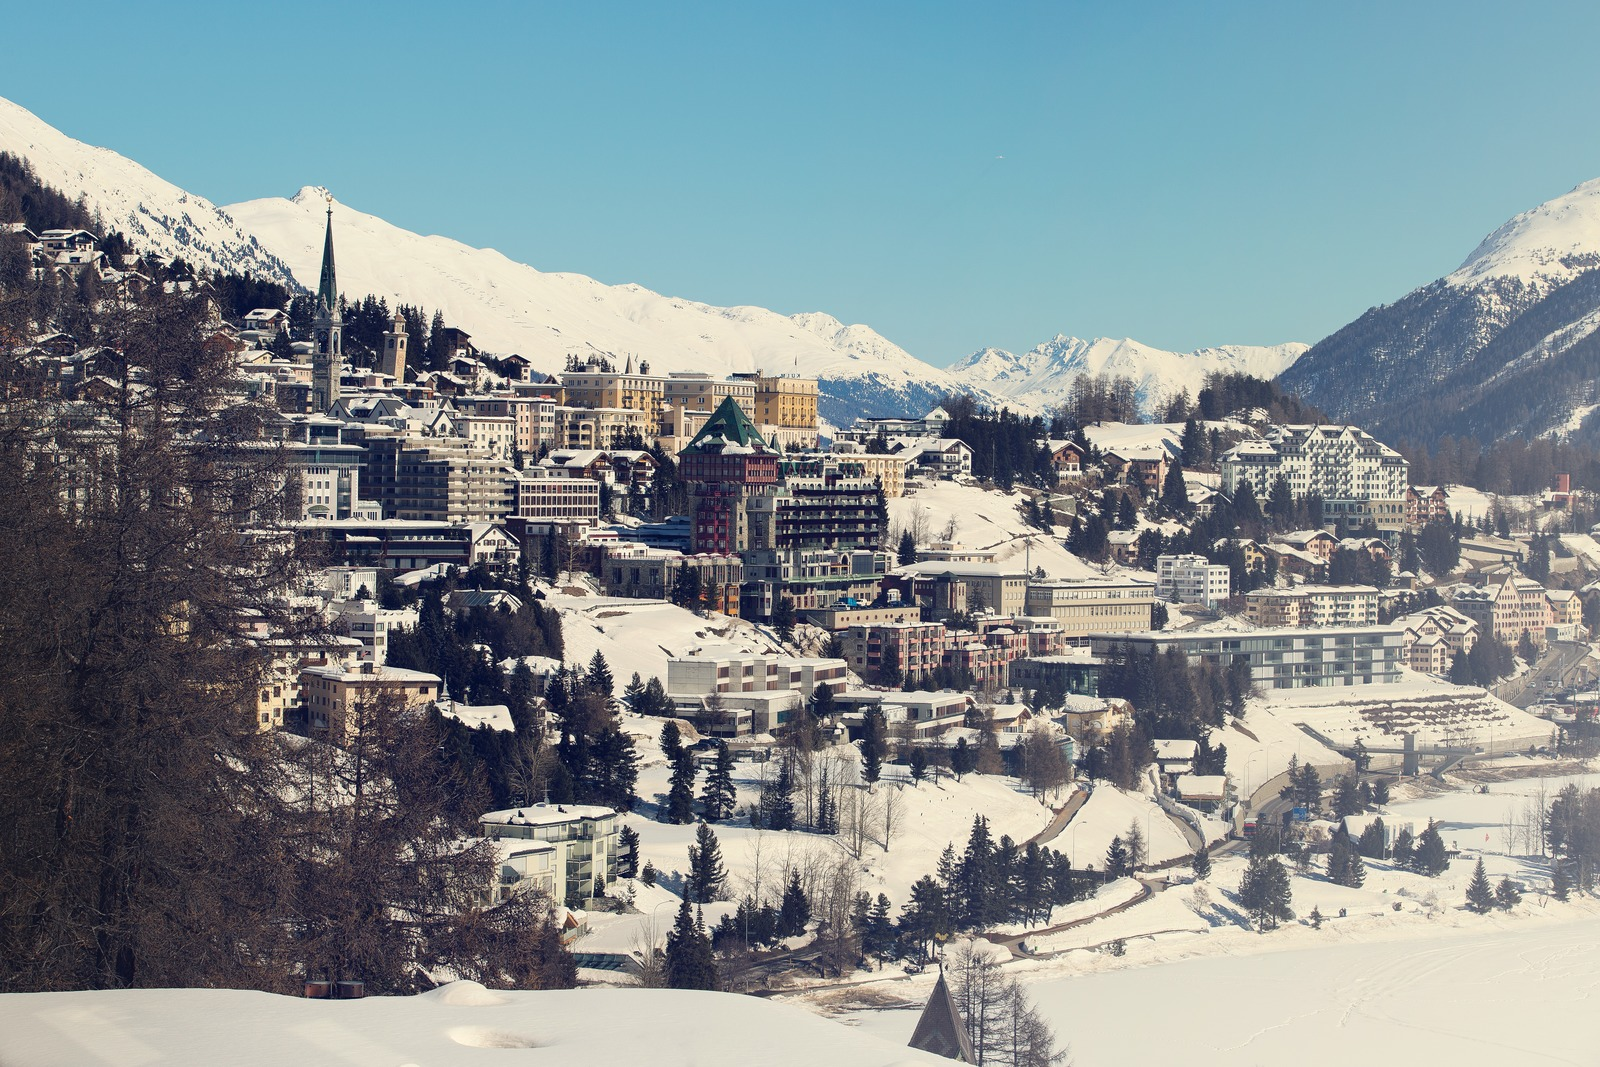 St Moritz - photo by Filip Zuan